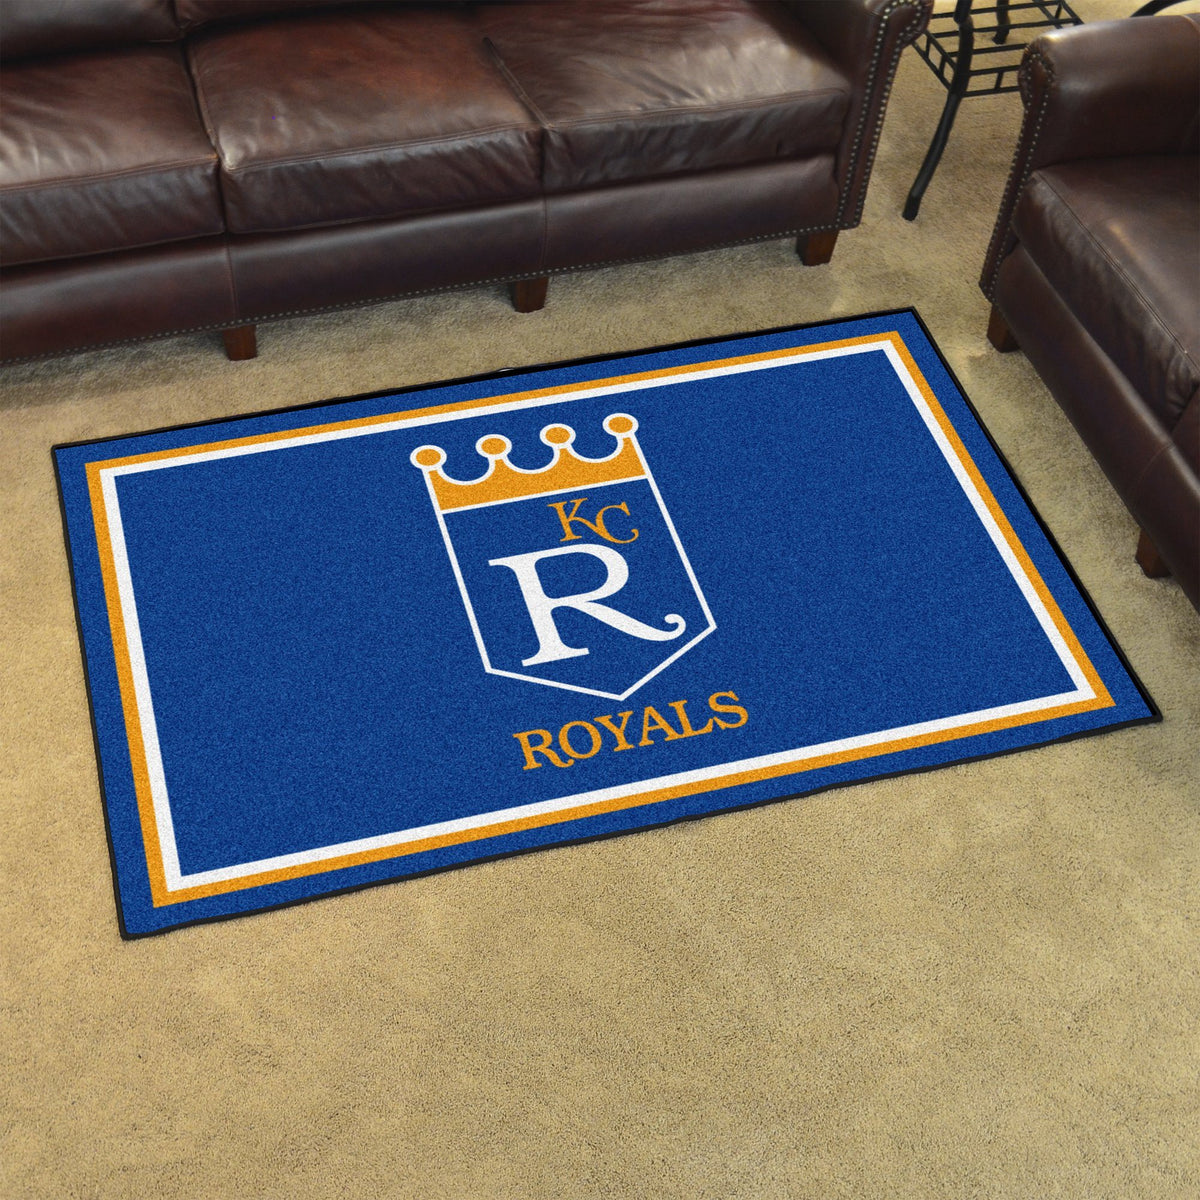 MLB Retro - 4' x 6' Rug MLB Retro Mats, Plush Rugs, 4x6 Rug, MLB, Home Fan Mats Kansas City Royals